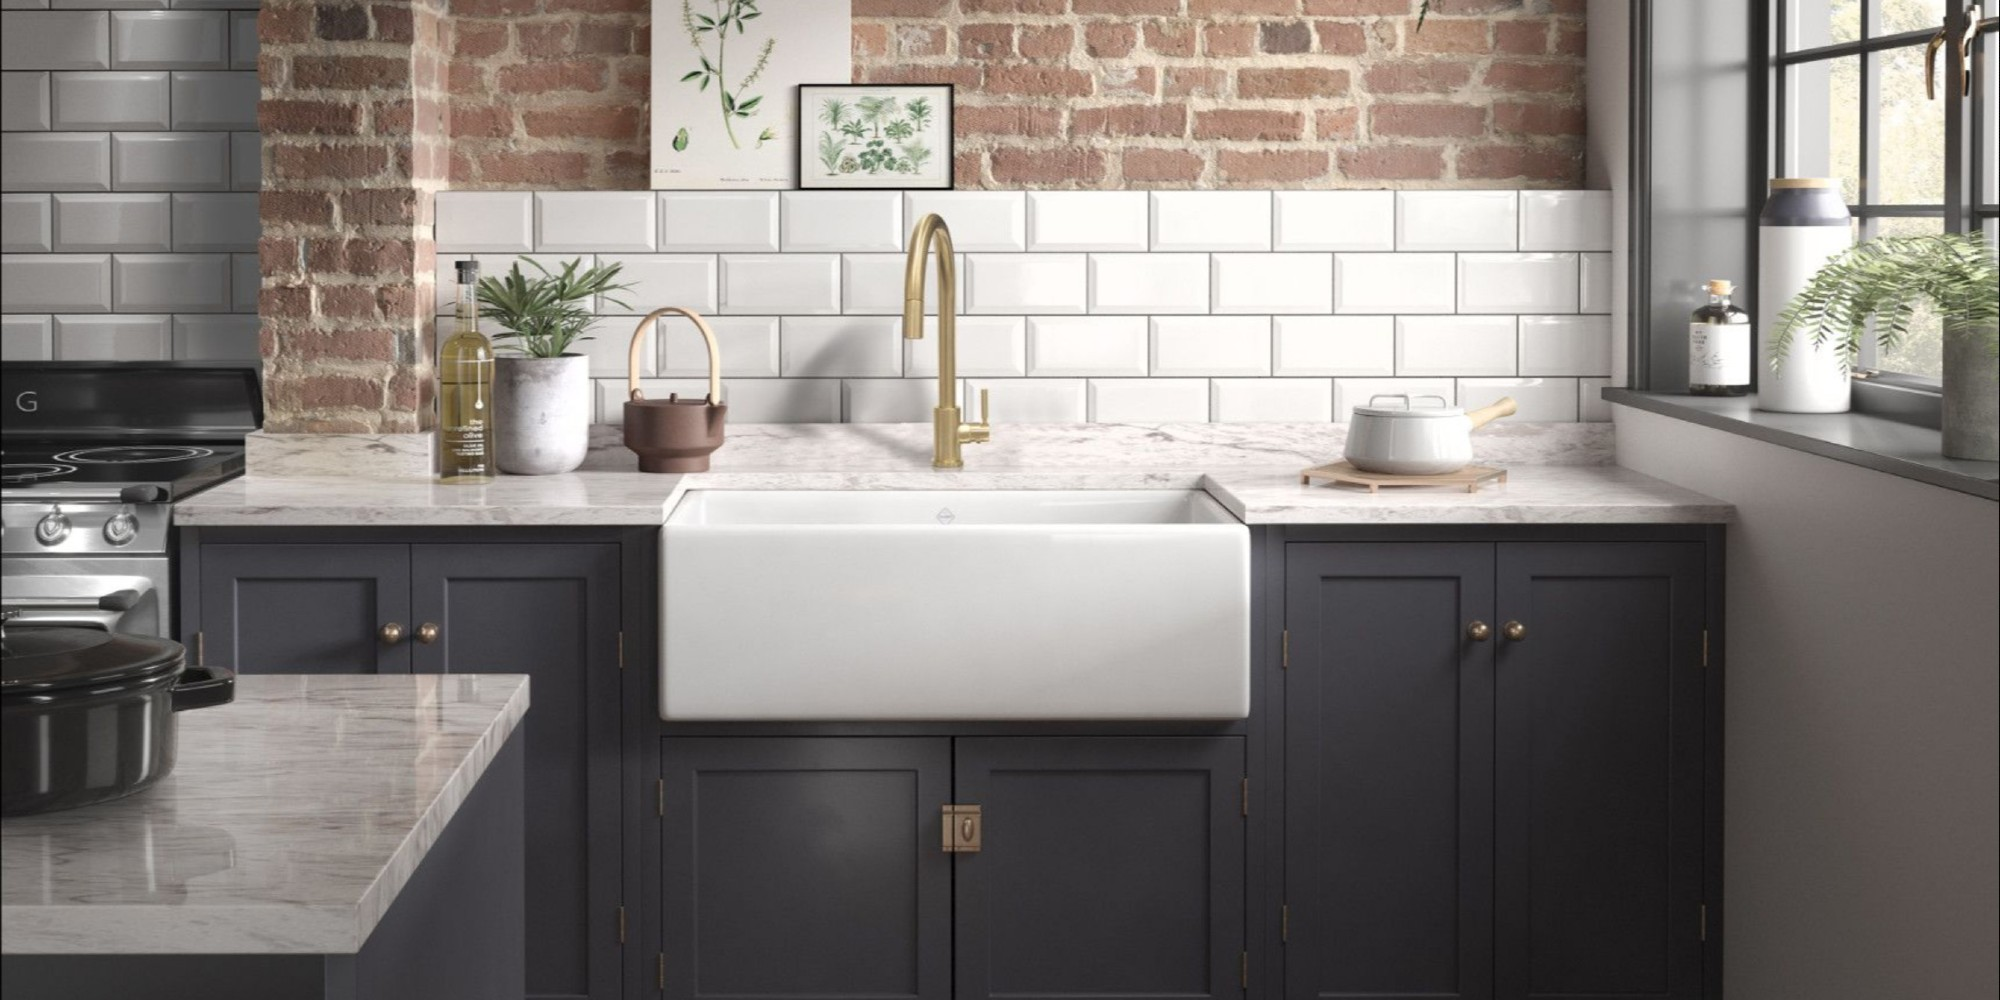 Kitchen Sink with Multi-tone Hardware and Faucet